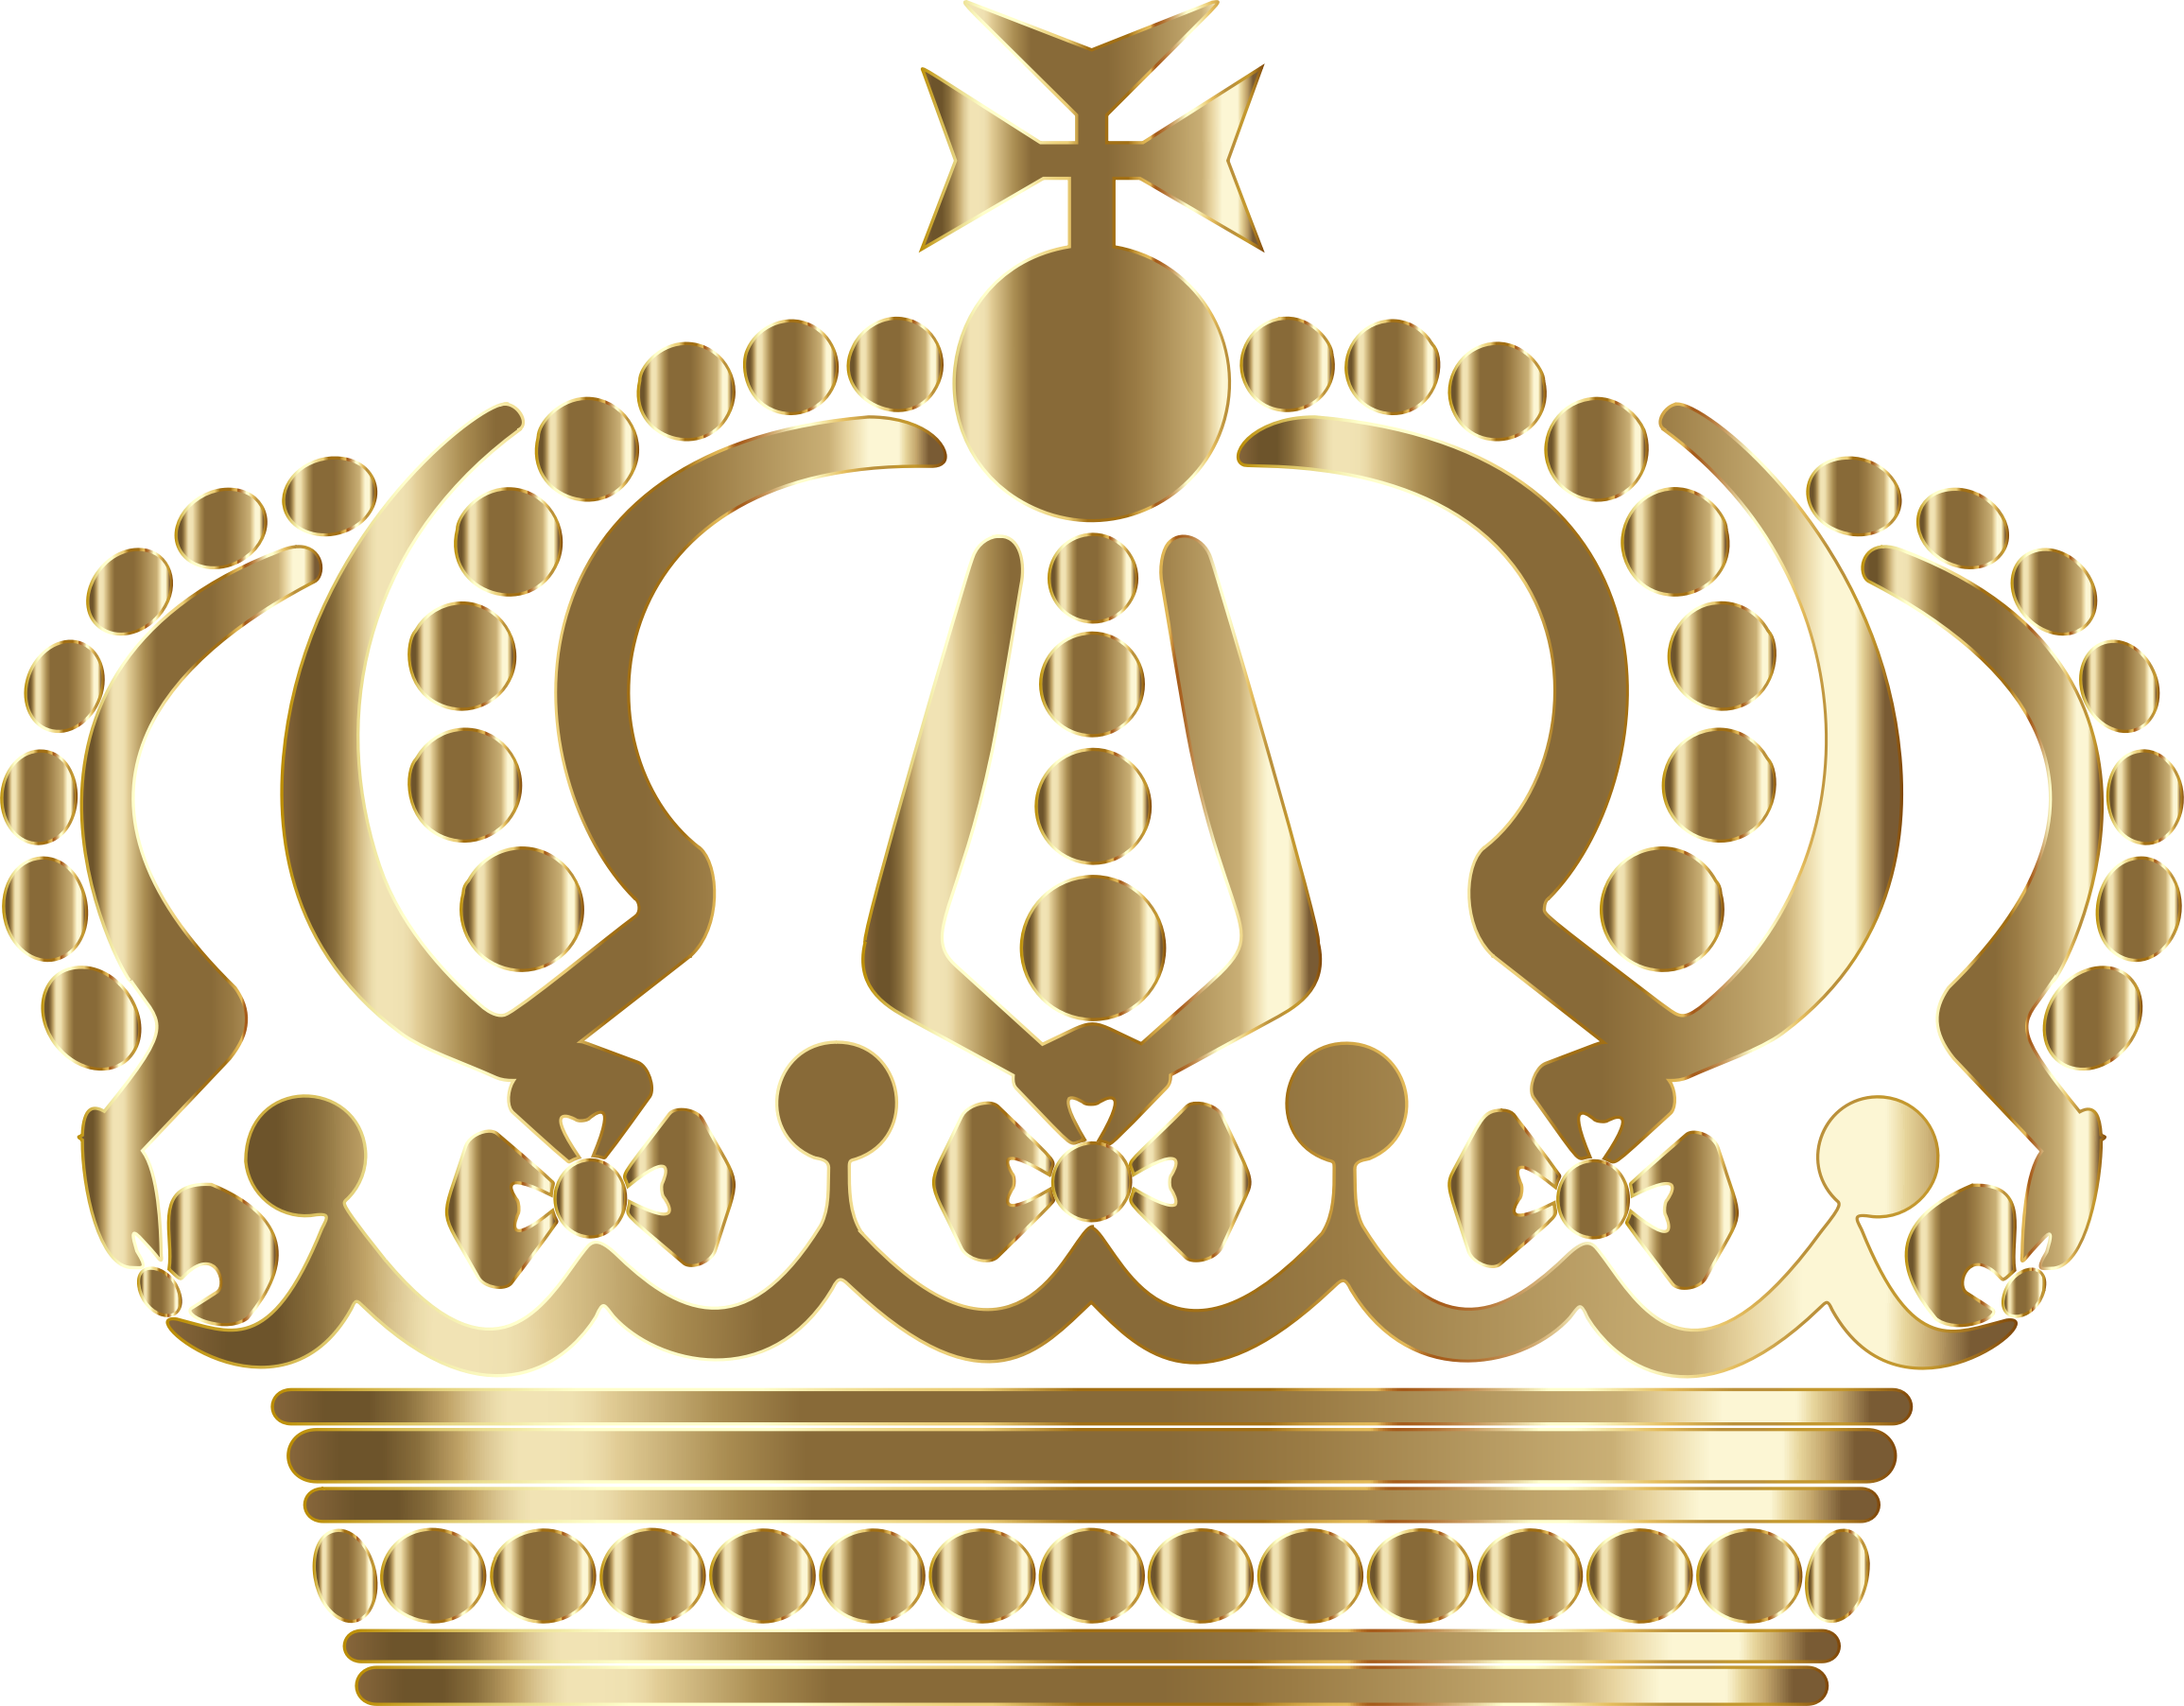 Heraldry crown clipart vector graphic royalty free Clipart - Gold German Imperial Crown No Background graphic royalty free